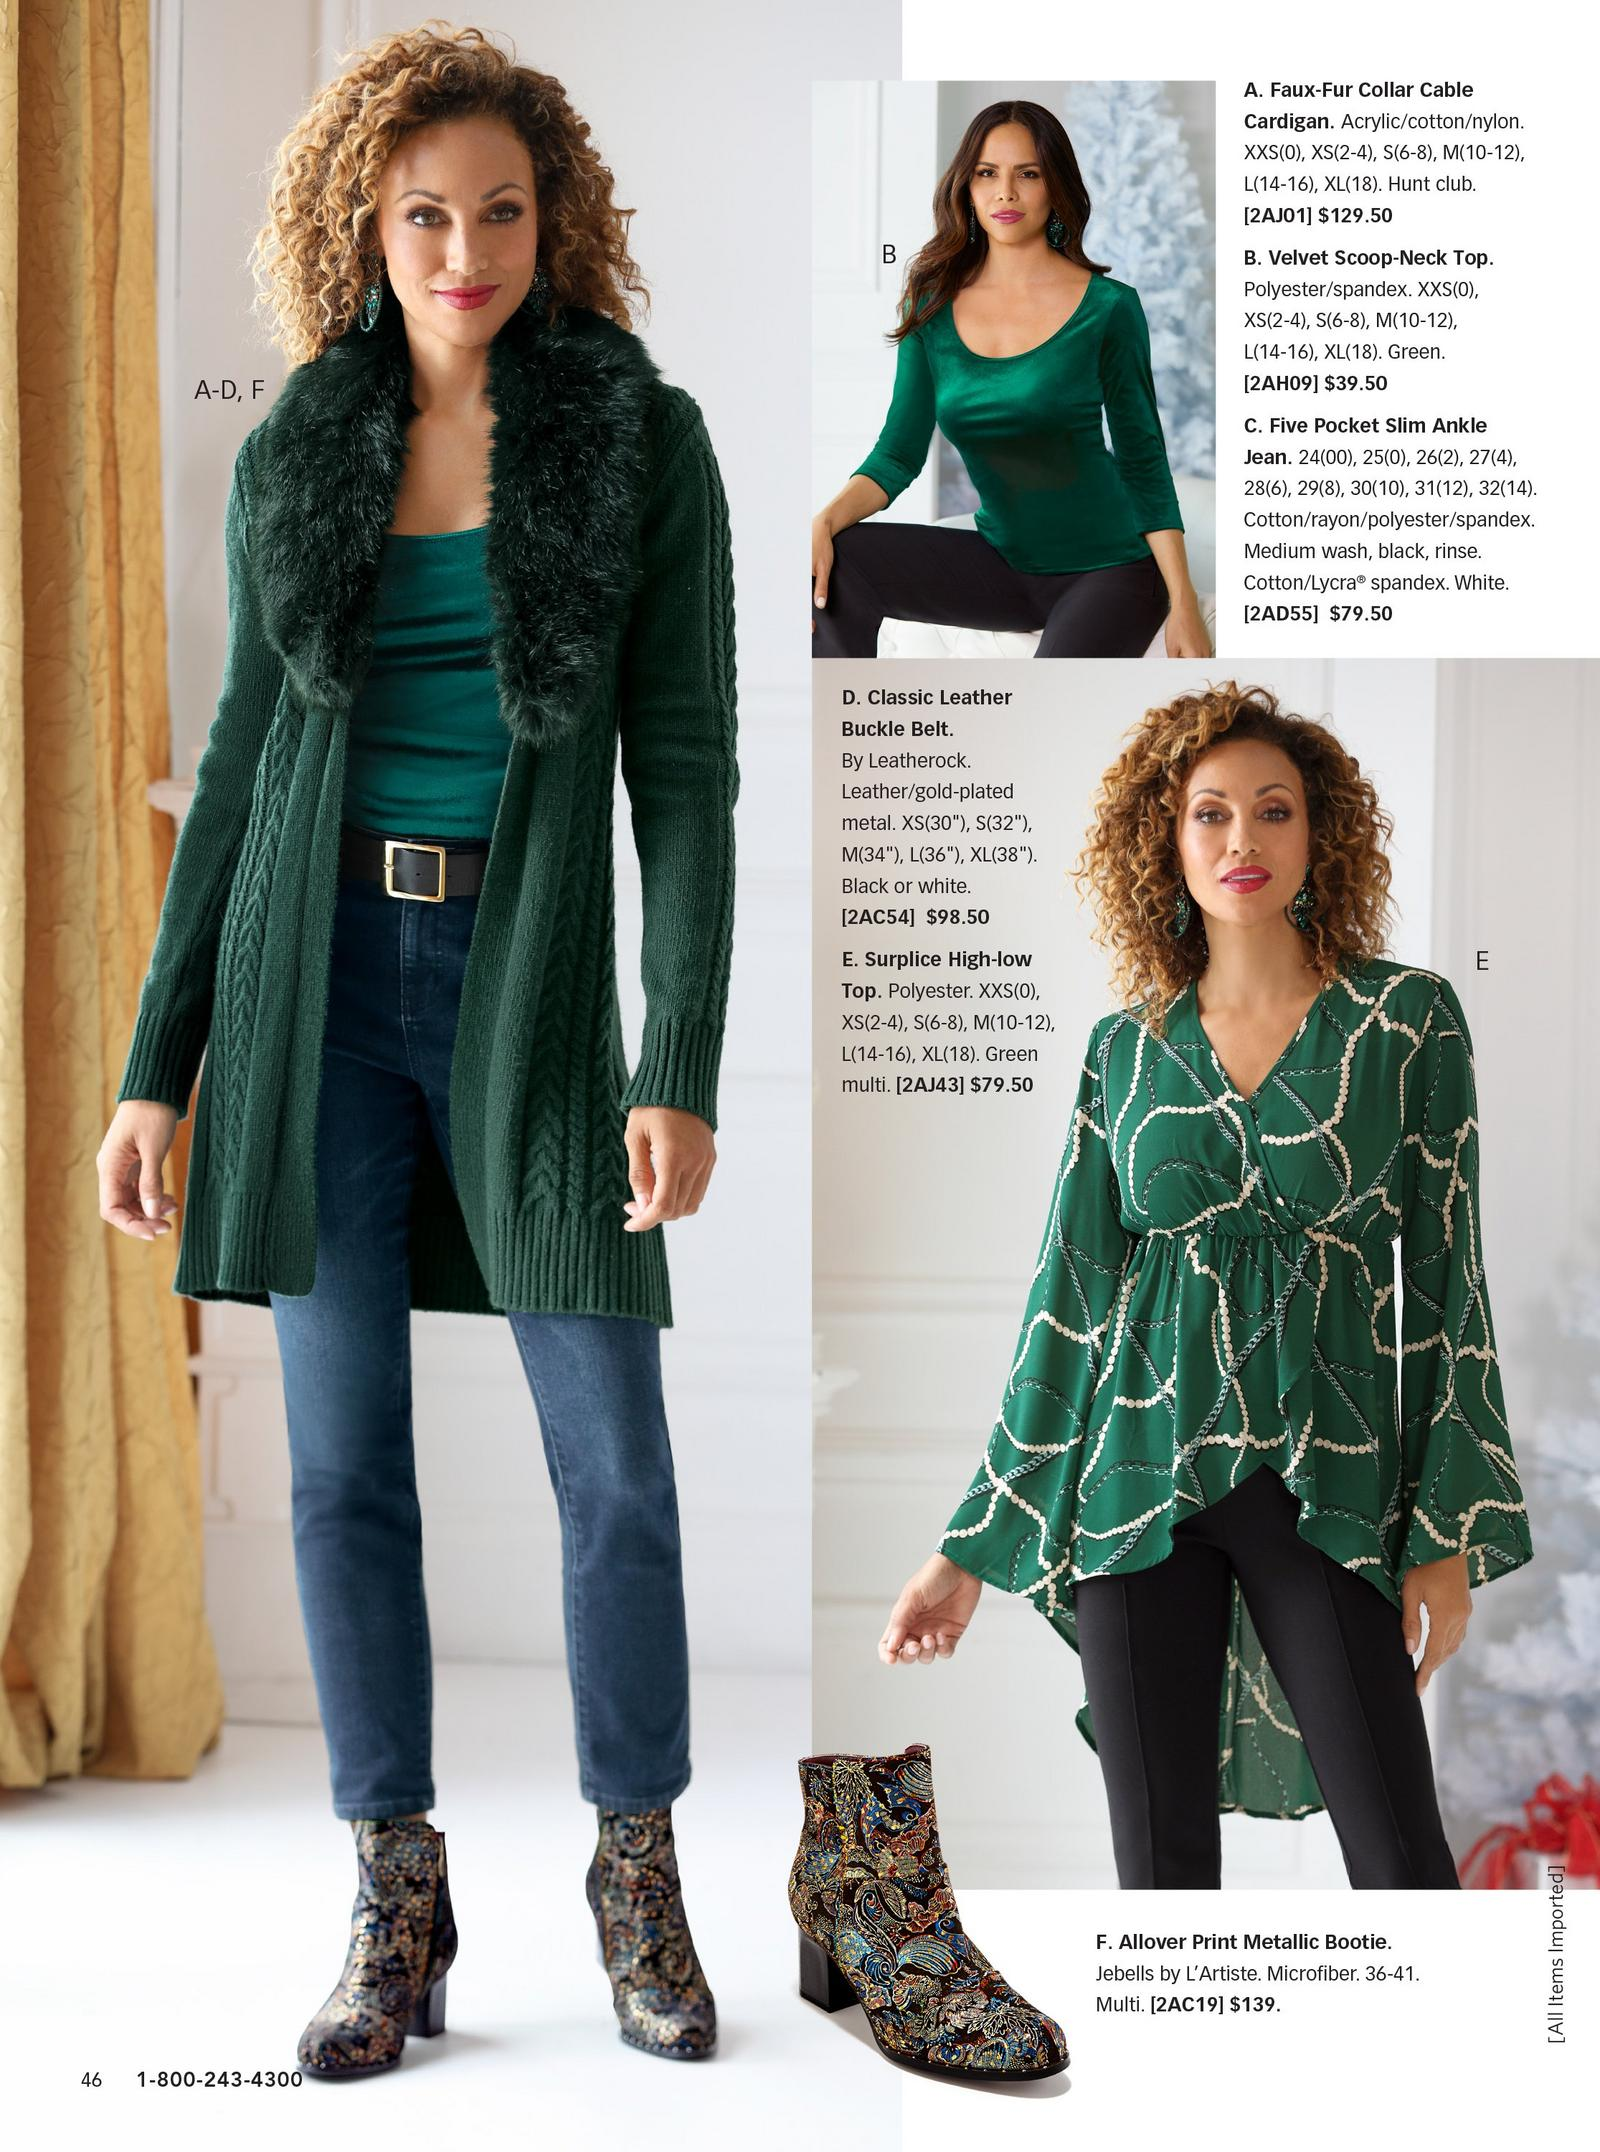 left model wearing green faux fur cardigan over green velvet top. right model wearing green chain print high-low top. top right: silo of green velvet top.